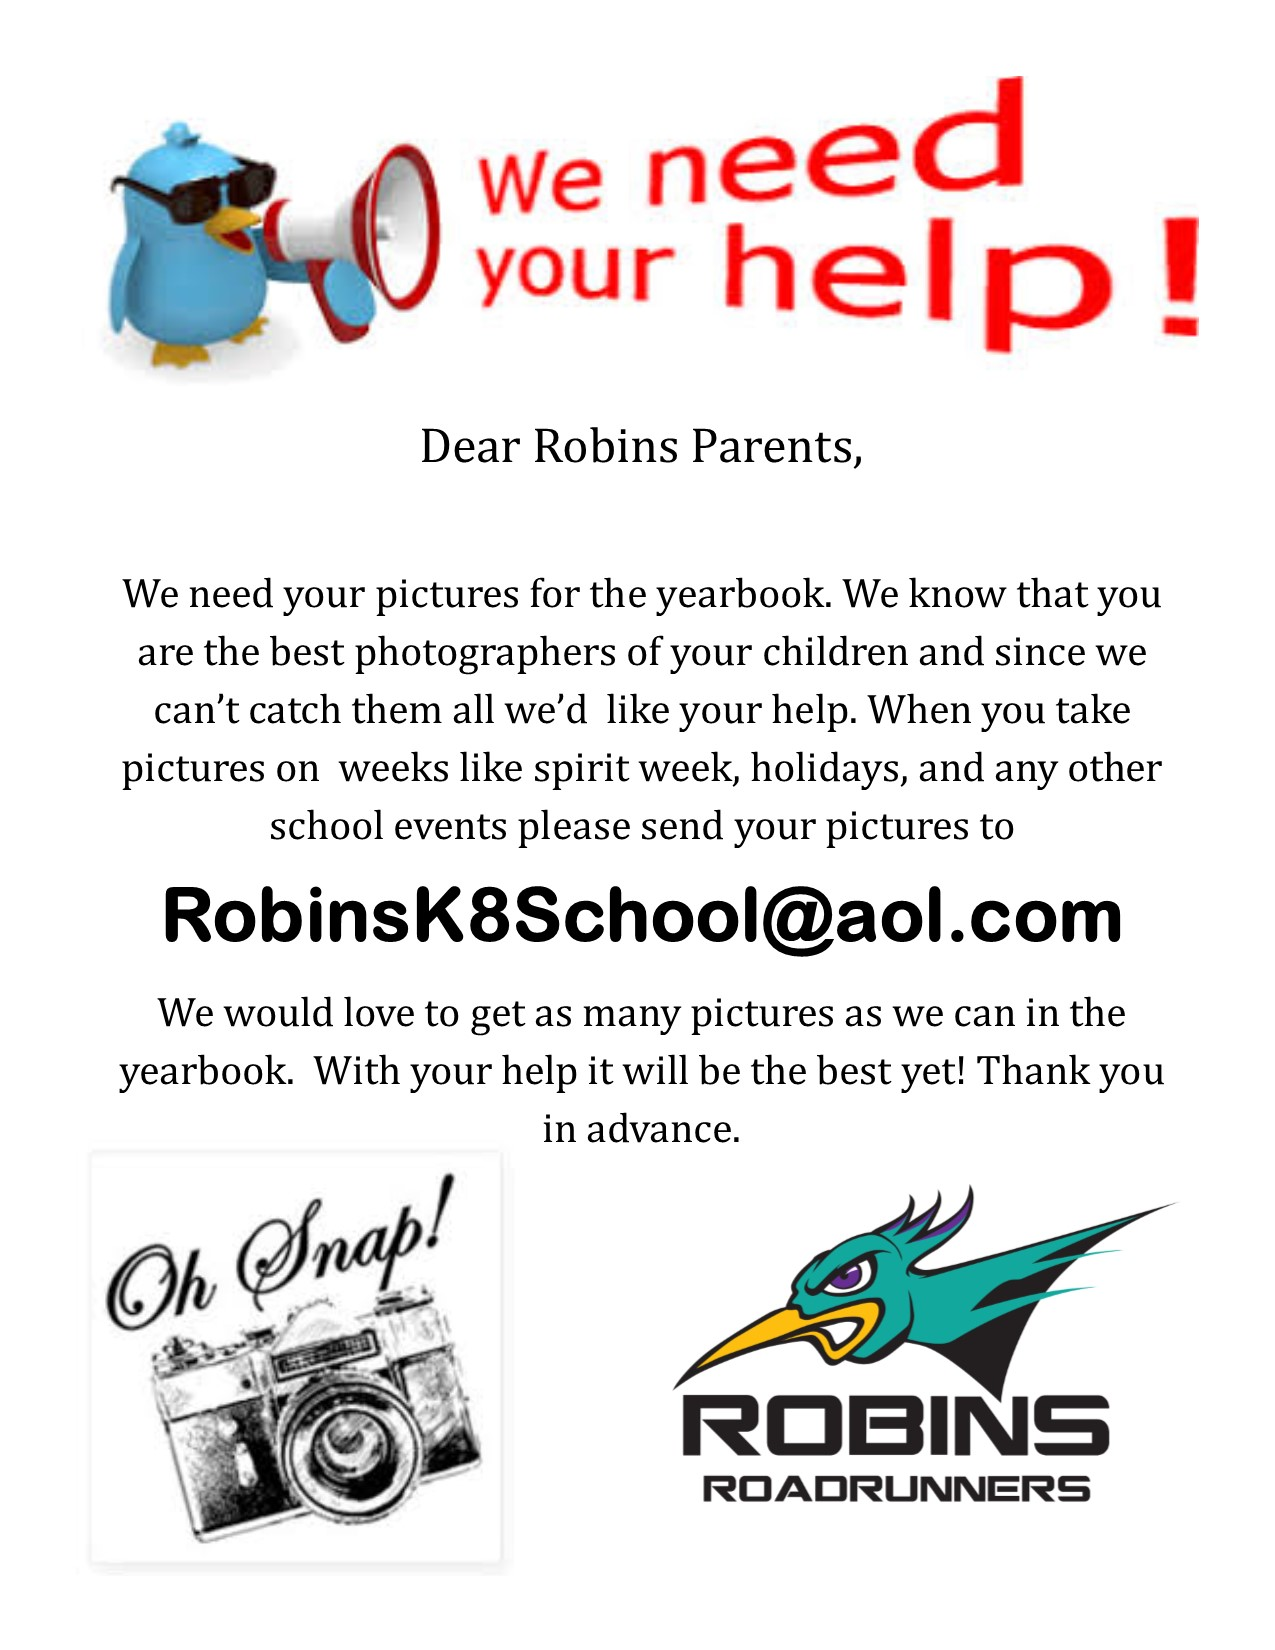 Dear Robins Parents,  We need your pictures for the yearbook. We know that you are the best photographers of your children and since we can't catch them all we'd  like your help. When you take   pictures on  weeks like spirit week, holidays, and any other school events please send your pictures to  RobinsK8School@aol.com We would love to get as many pictures as we can in the  yearbook.  With your help it will be the best yet! Thank you in advance.   If you have any questions please contact Kristy Melendez @ Kristy.Melendez@TUSD1.org